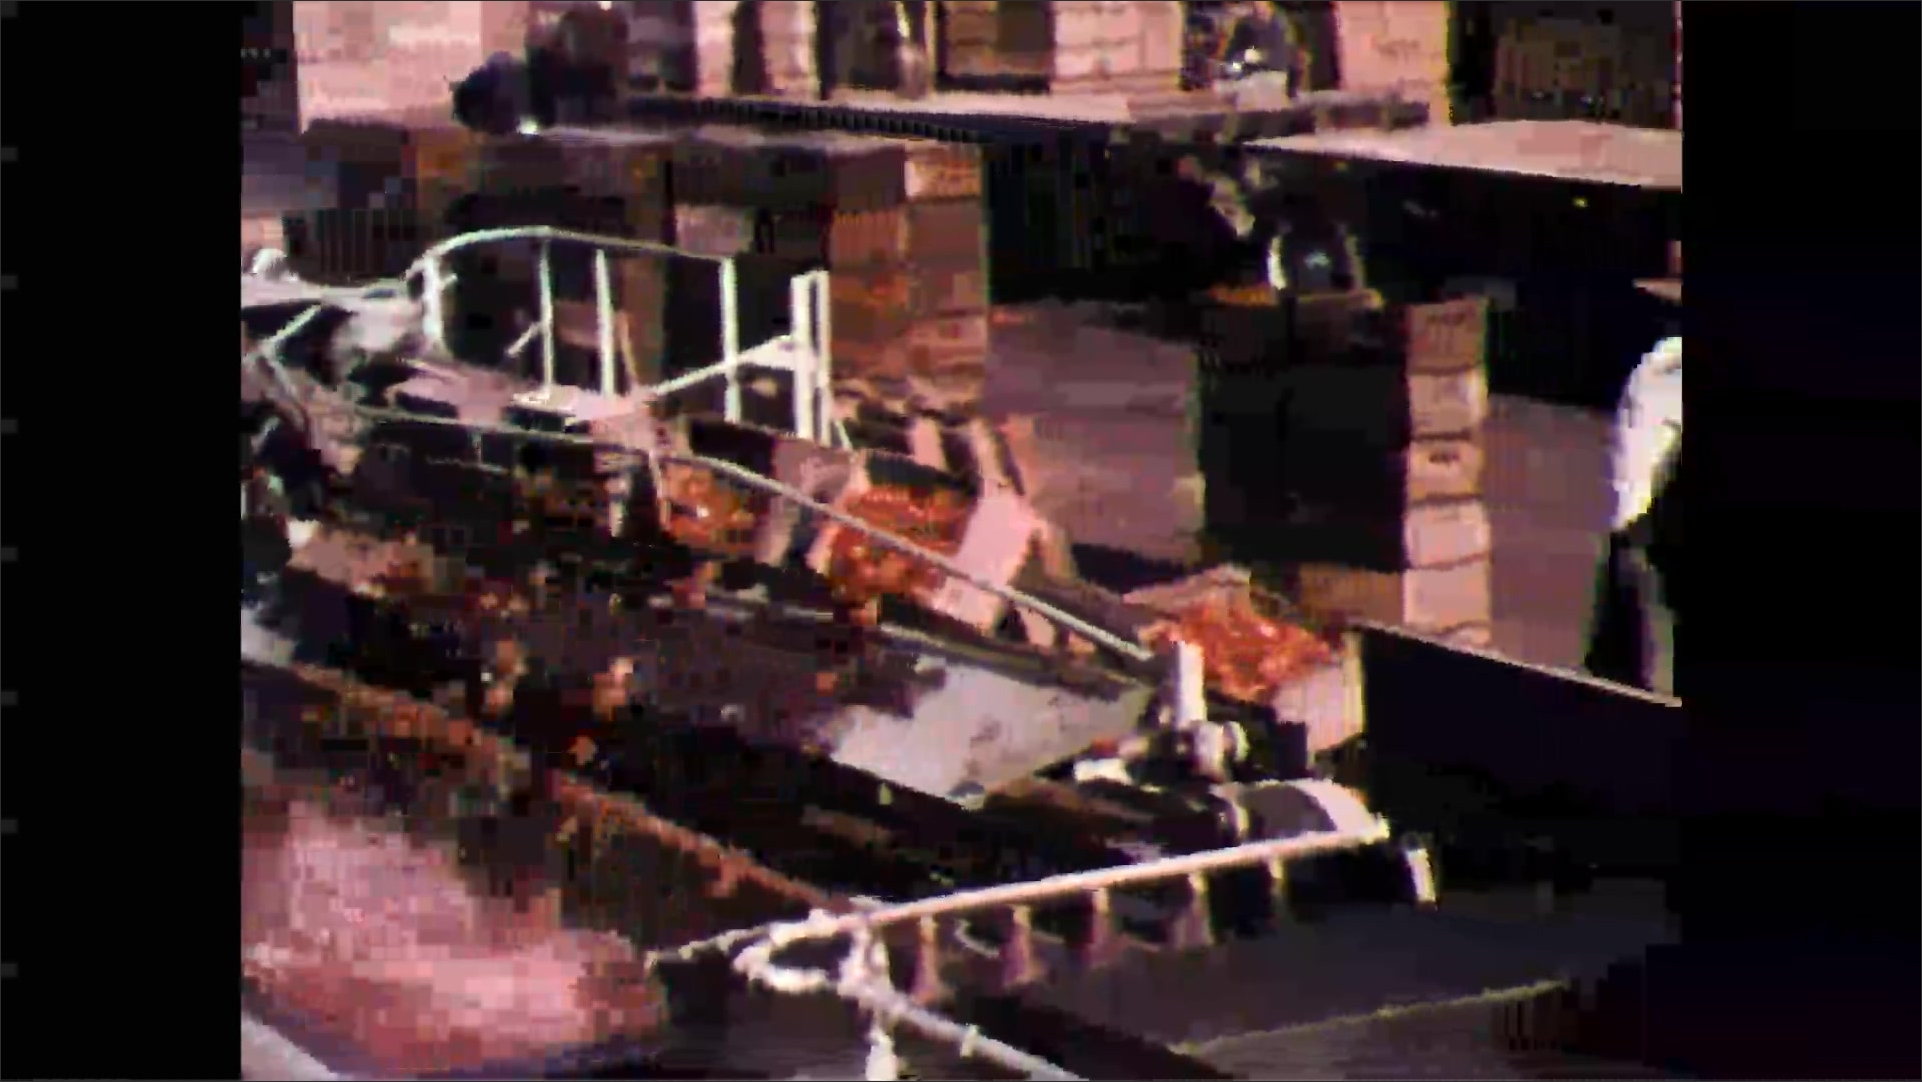 1960s: Industrial food processing plant, stacked wooden pallets, crates of tomatoes travel down line, are dumped into water trough. Men move crates. Rollers move tomatoes into water.